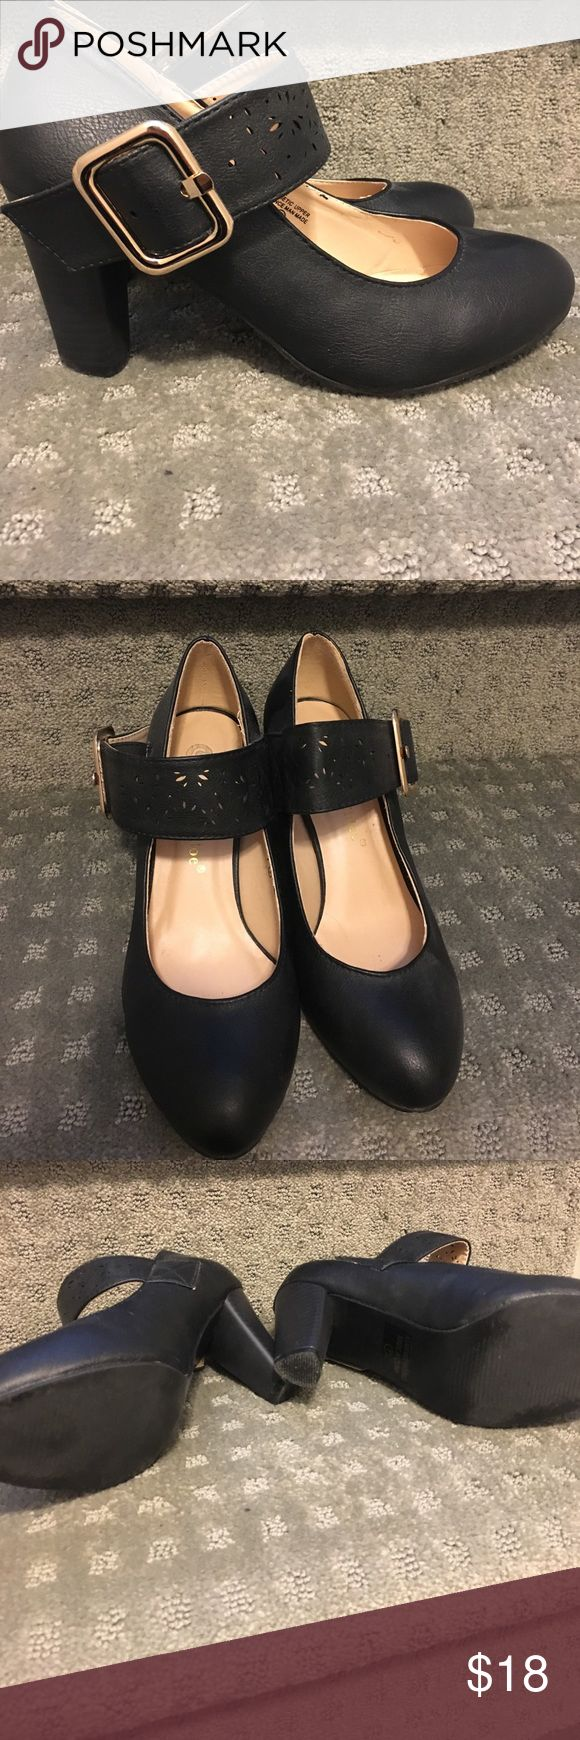 Black Mary Jane heels worn once Cute and comfy Mary Jane heels worn once! I love them I'm just downsizing! Shoes Heels